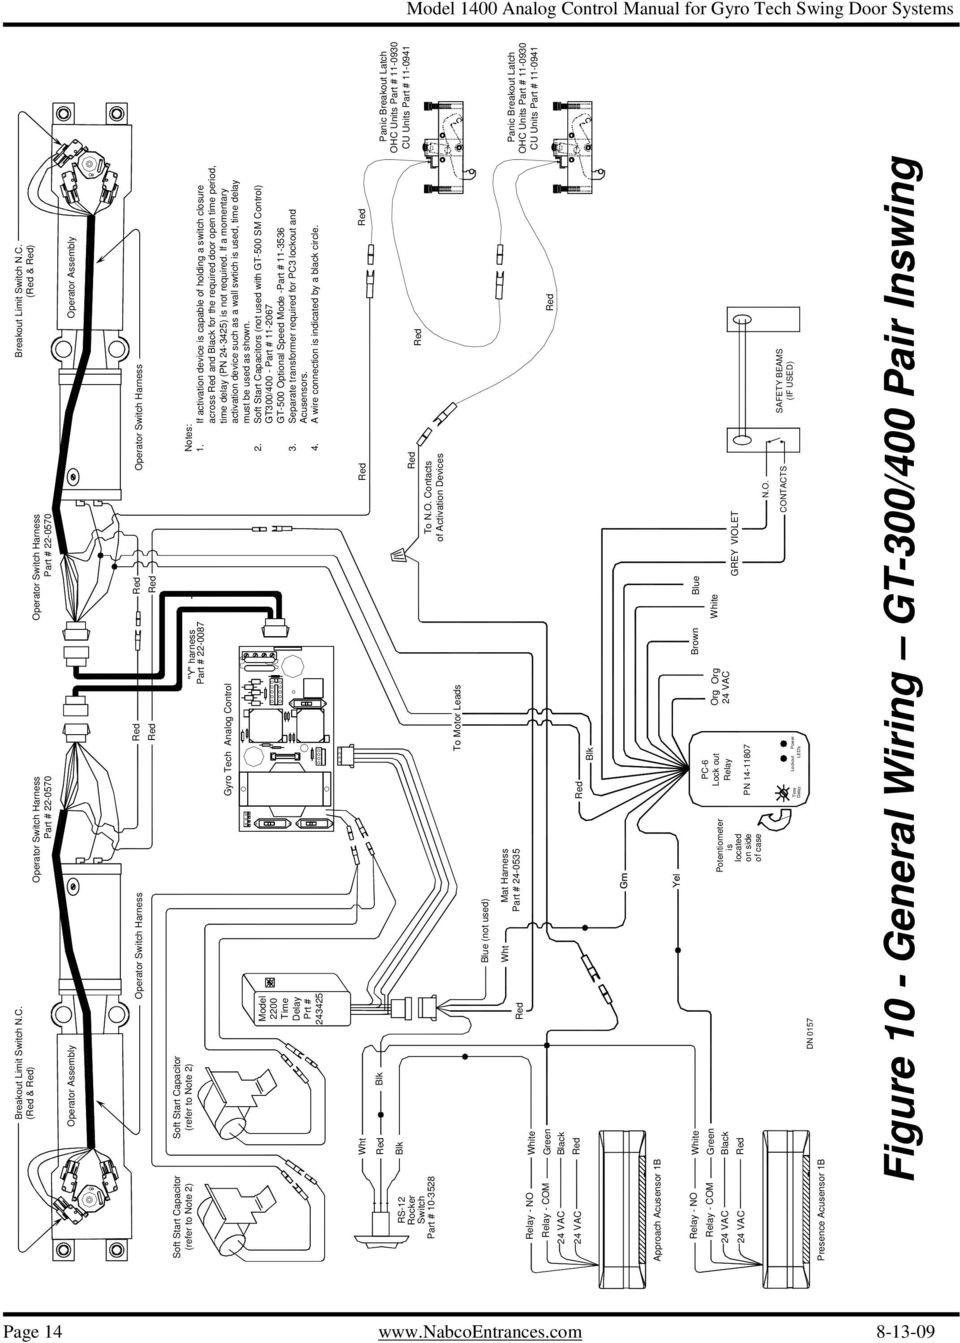 Analog Control Wiring Adjustment Manual For Gyro Tech Swing Door 70 5600 Car Wire Harness Diagram If A Momentary Activation Device Such As Wall Swtich Is Used Time Delay Must 15 Section B Sample Diagrams